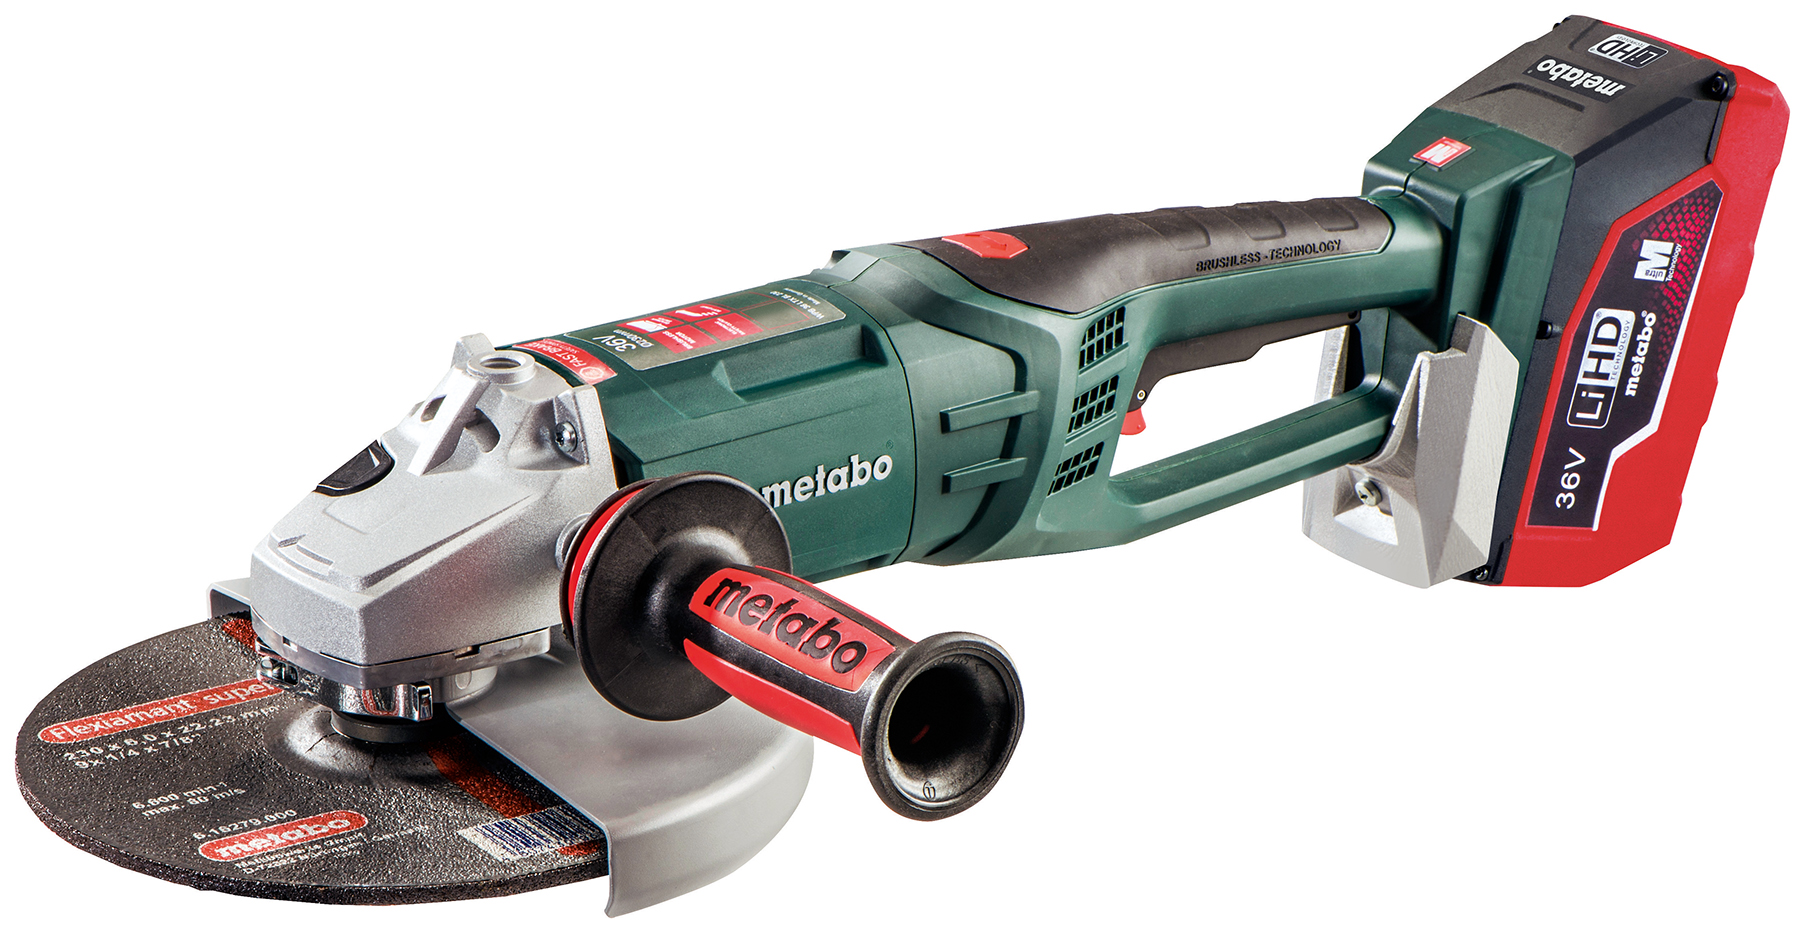 metabo wpb 36 ltx bl 230 9 inch cordless grinder contractor supply magazine. Black Bedroom Furniture Sets. Home Design Ideas